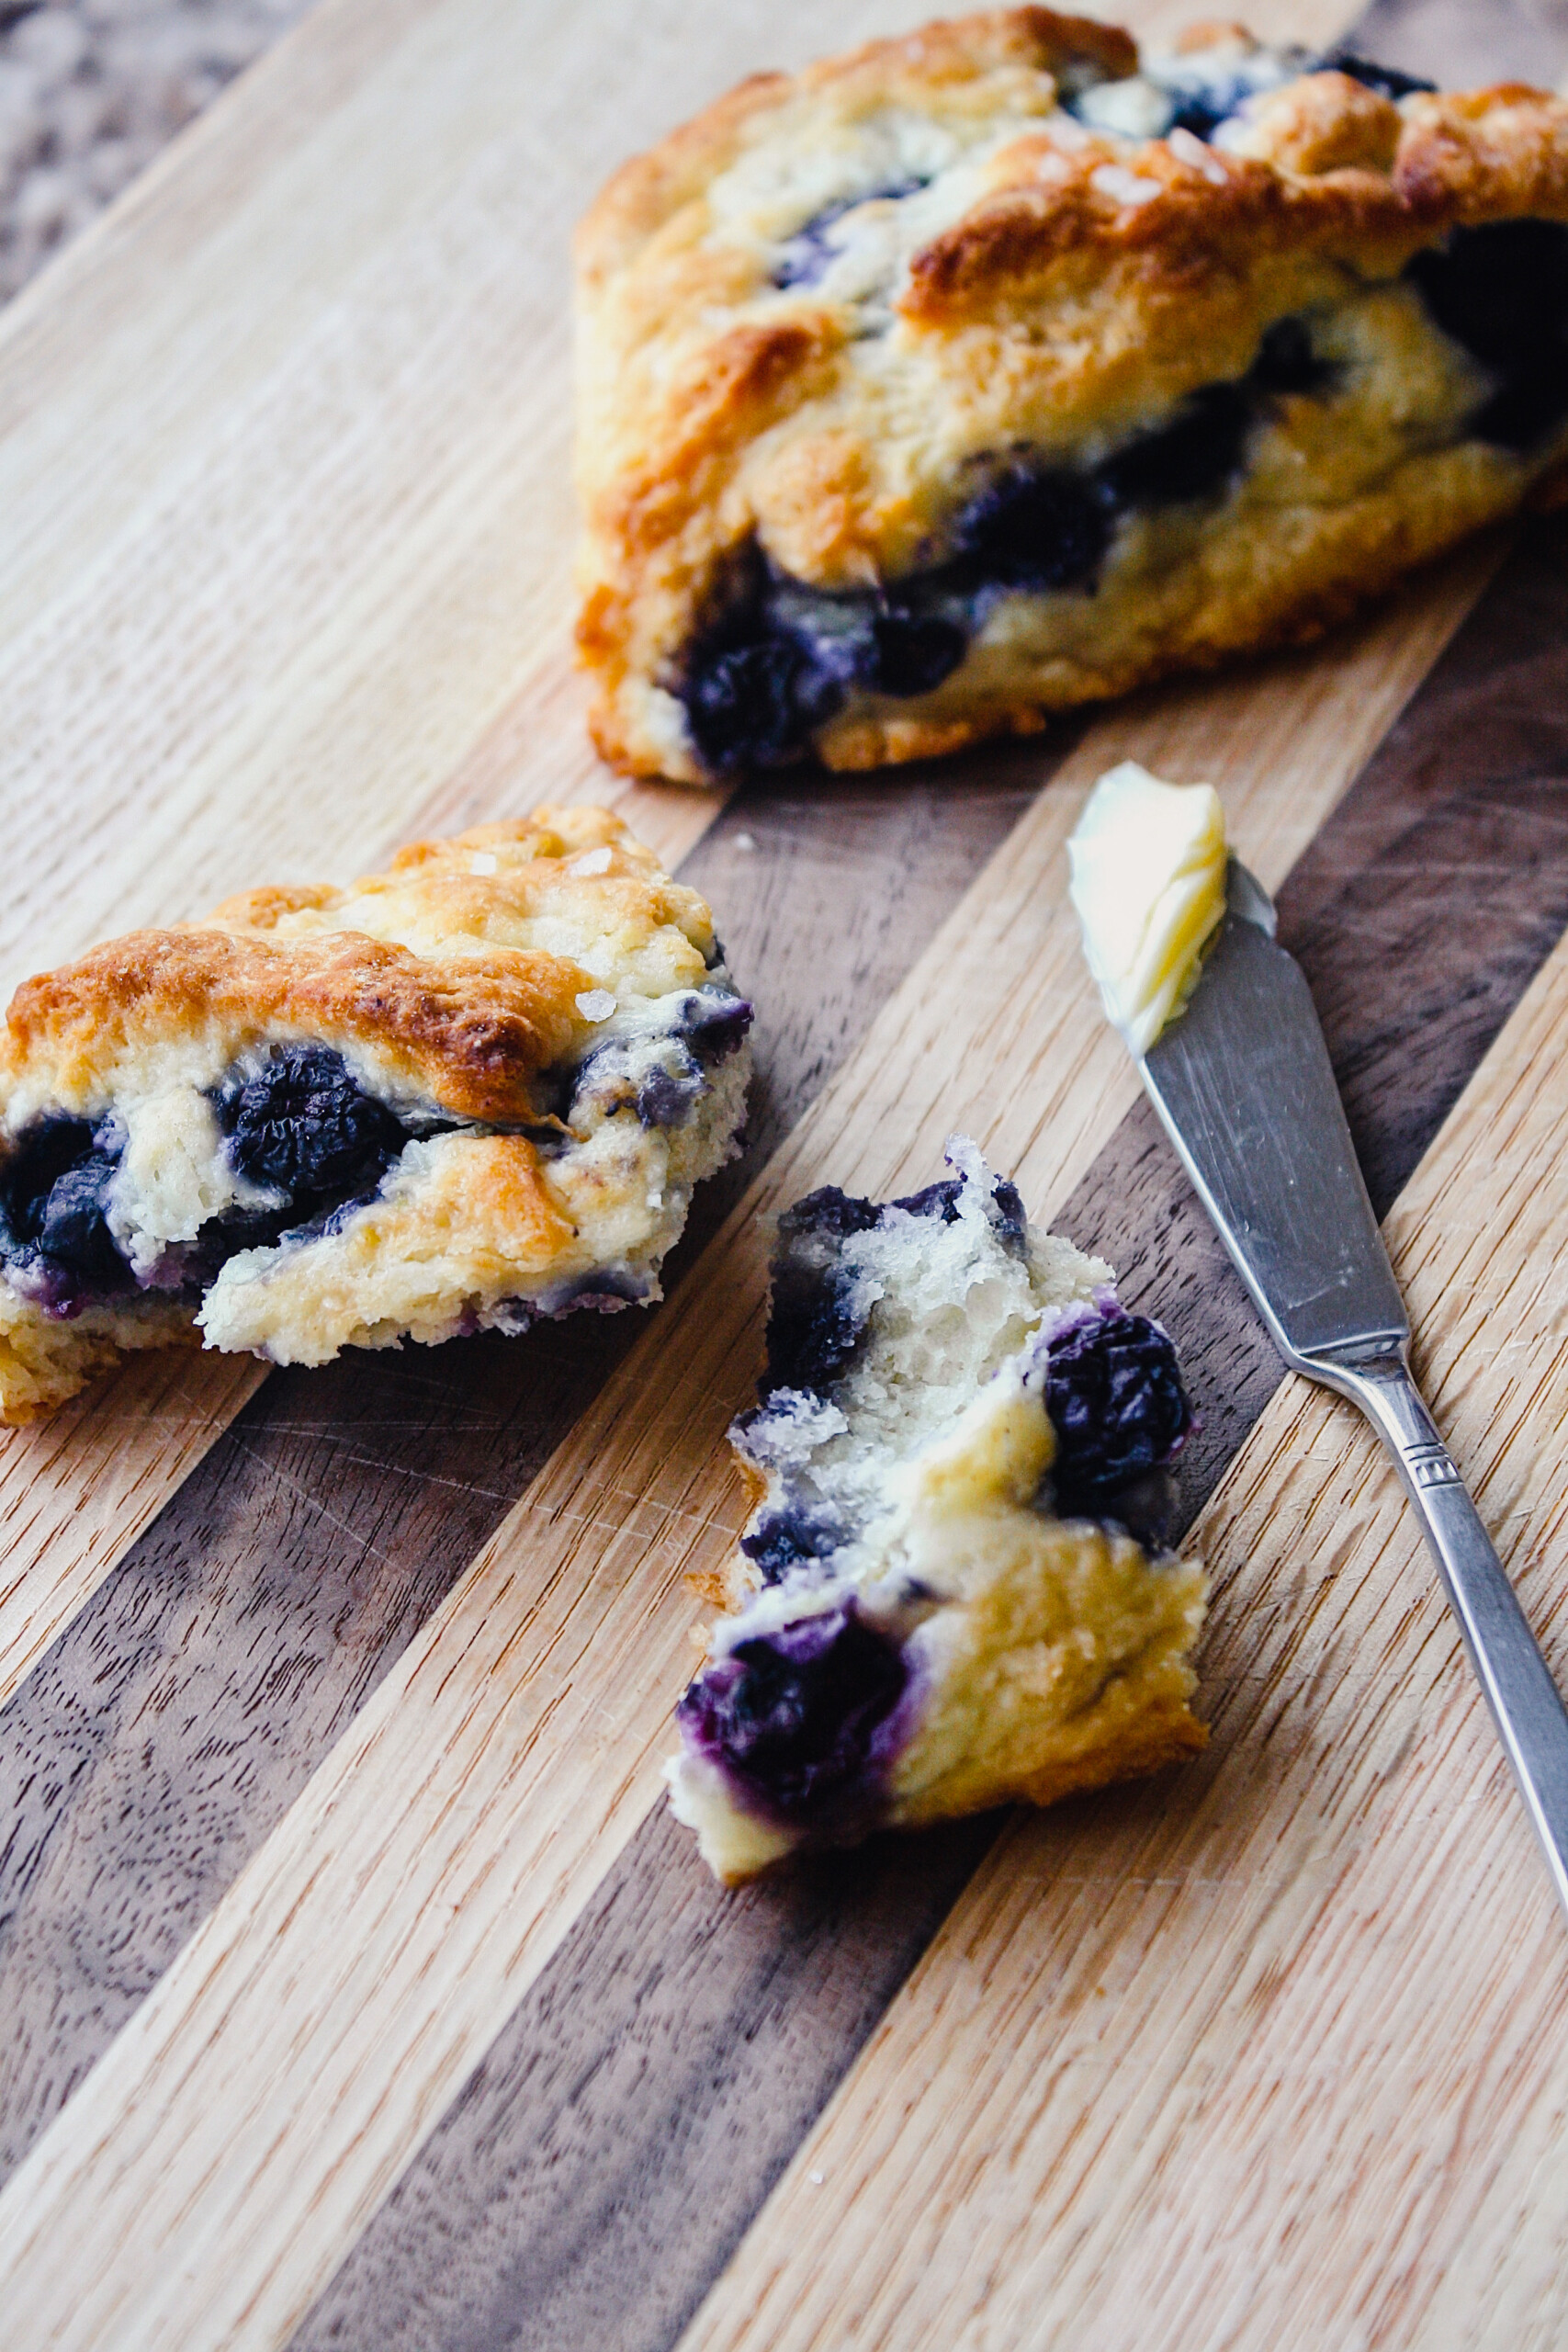 Photograph of healthy low fat scones on a wooden board